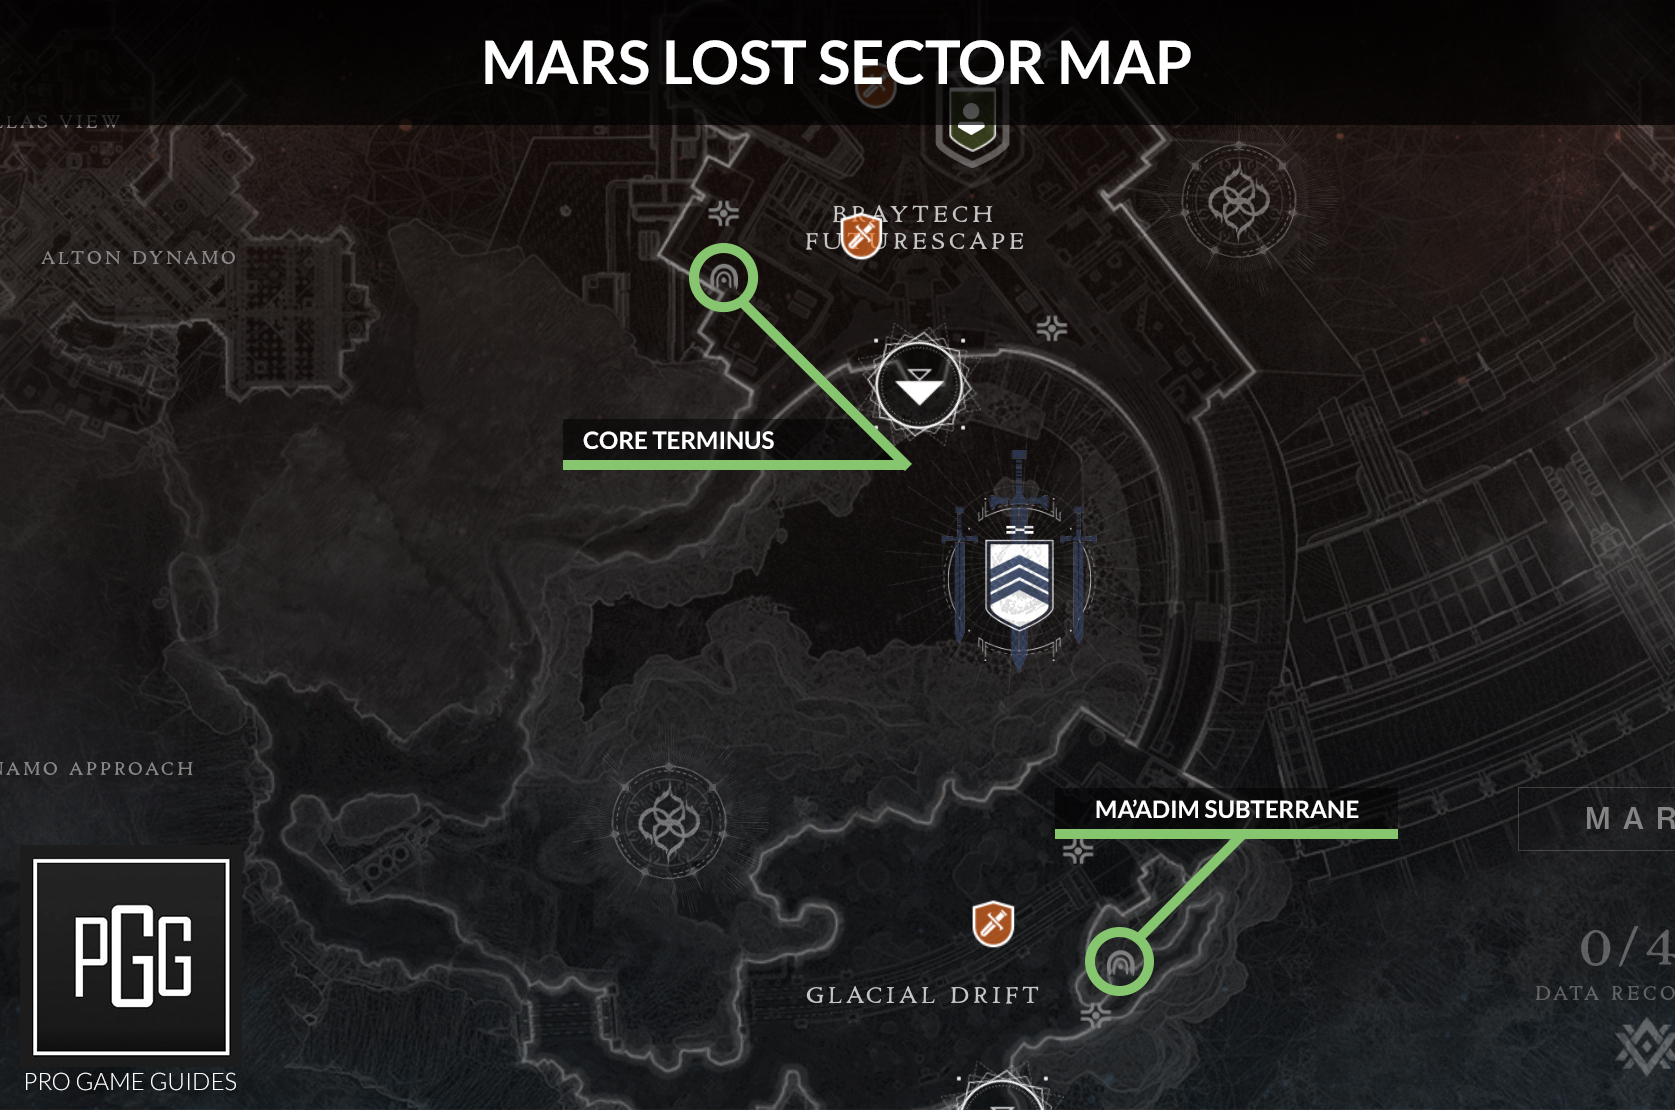 destiny 2 lost sector locations maps all lost sectors in destiny 2 forsaken pro game guides destiny 2 lost sector locations maps